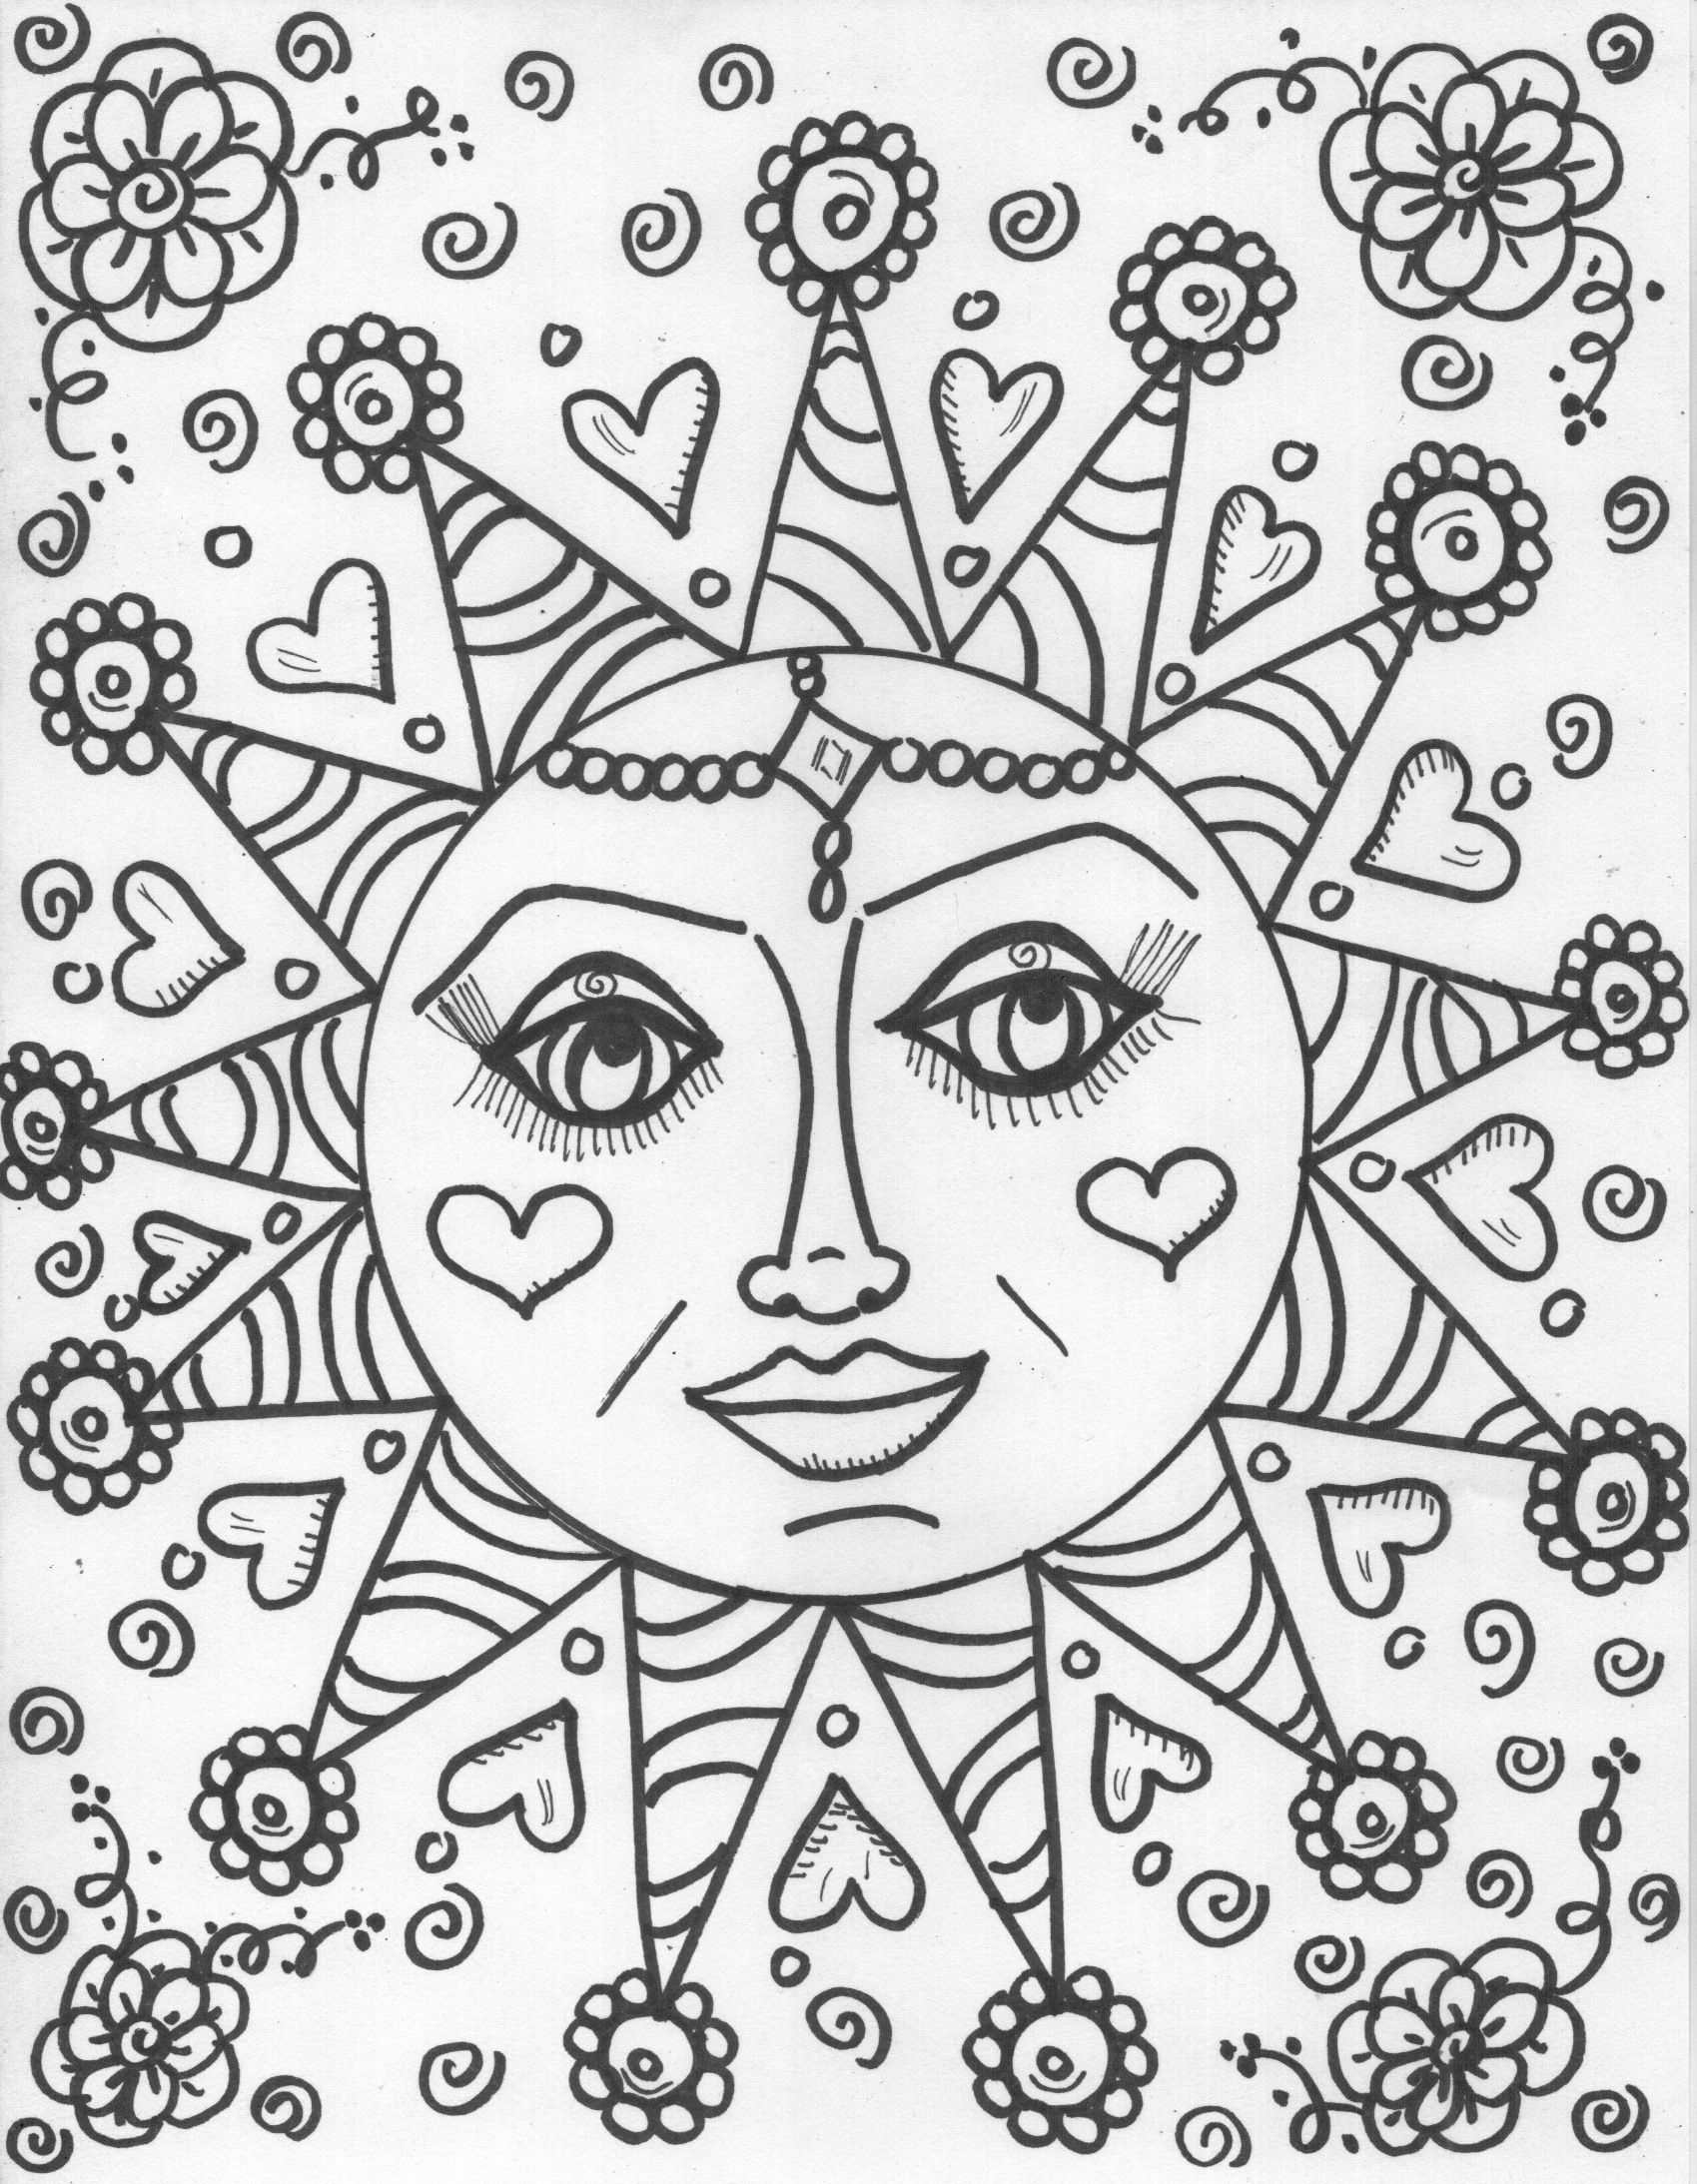 coloring book pages…design your own coloring book – thebarefoothome